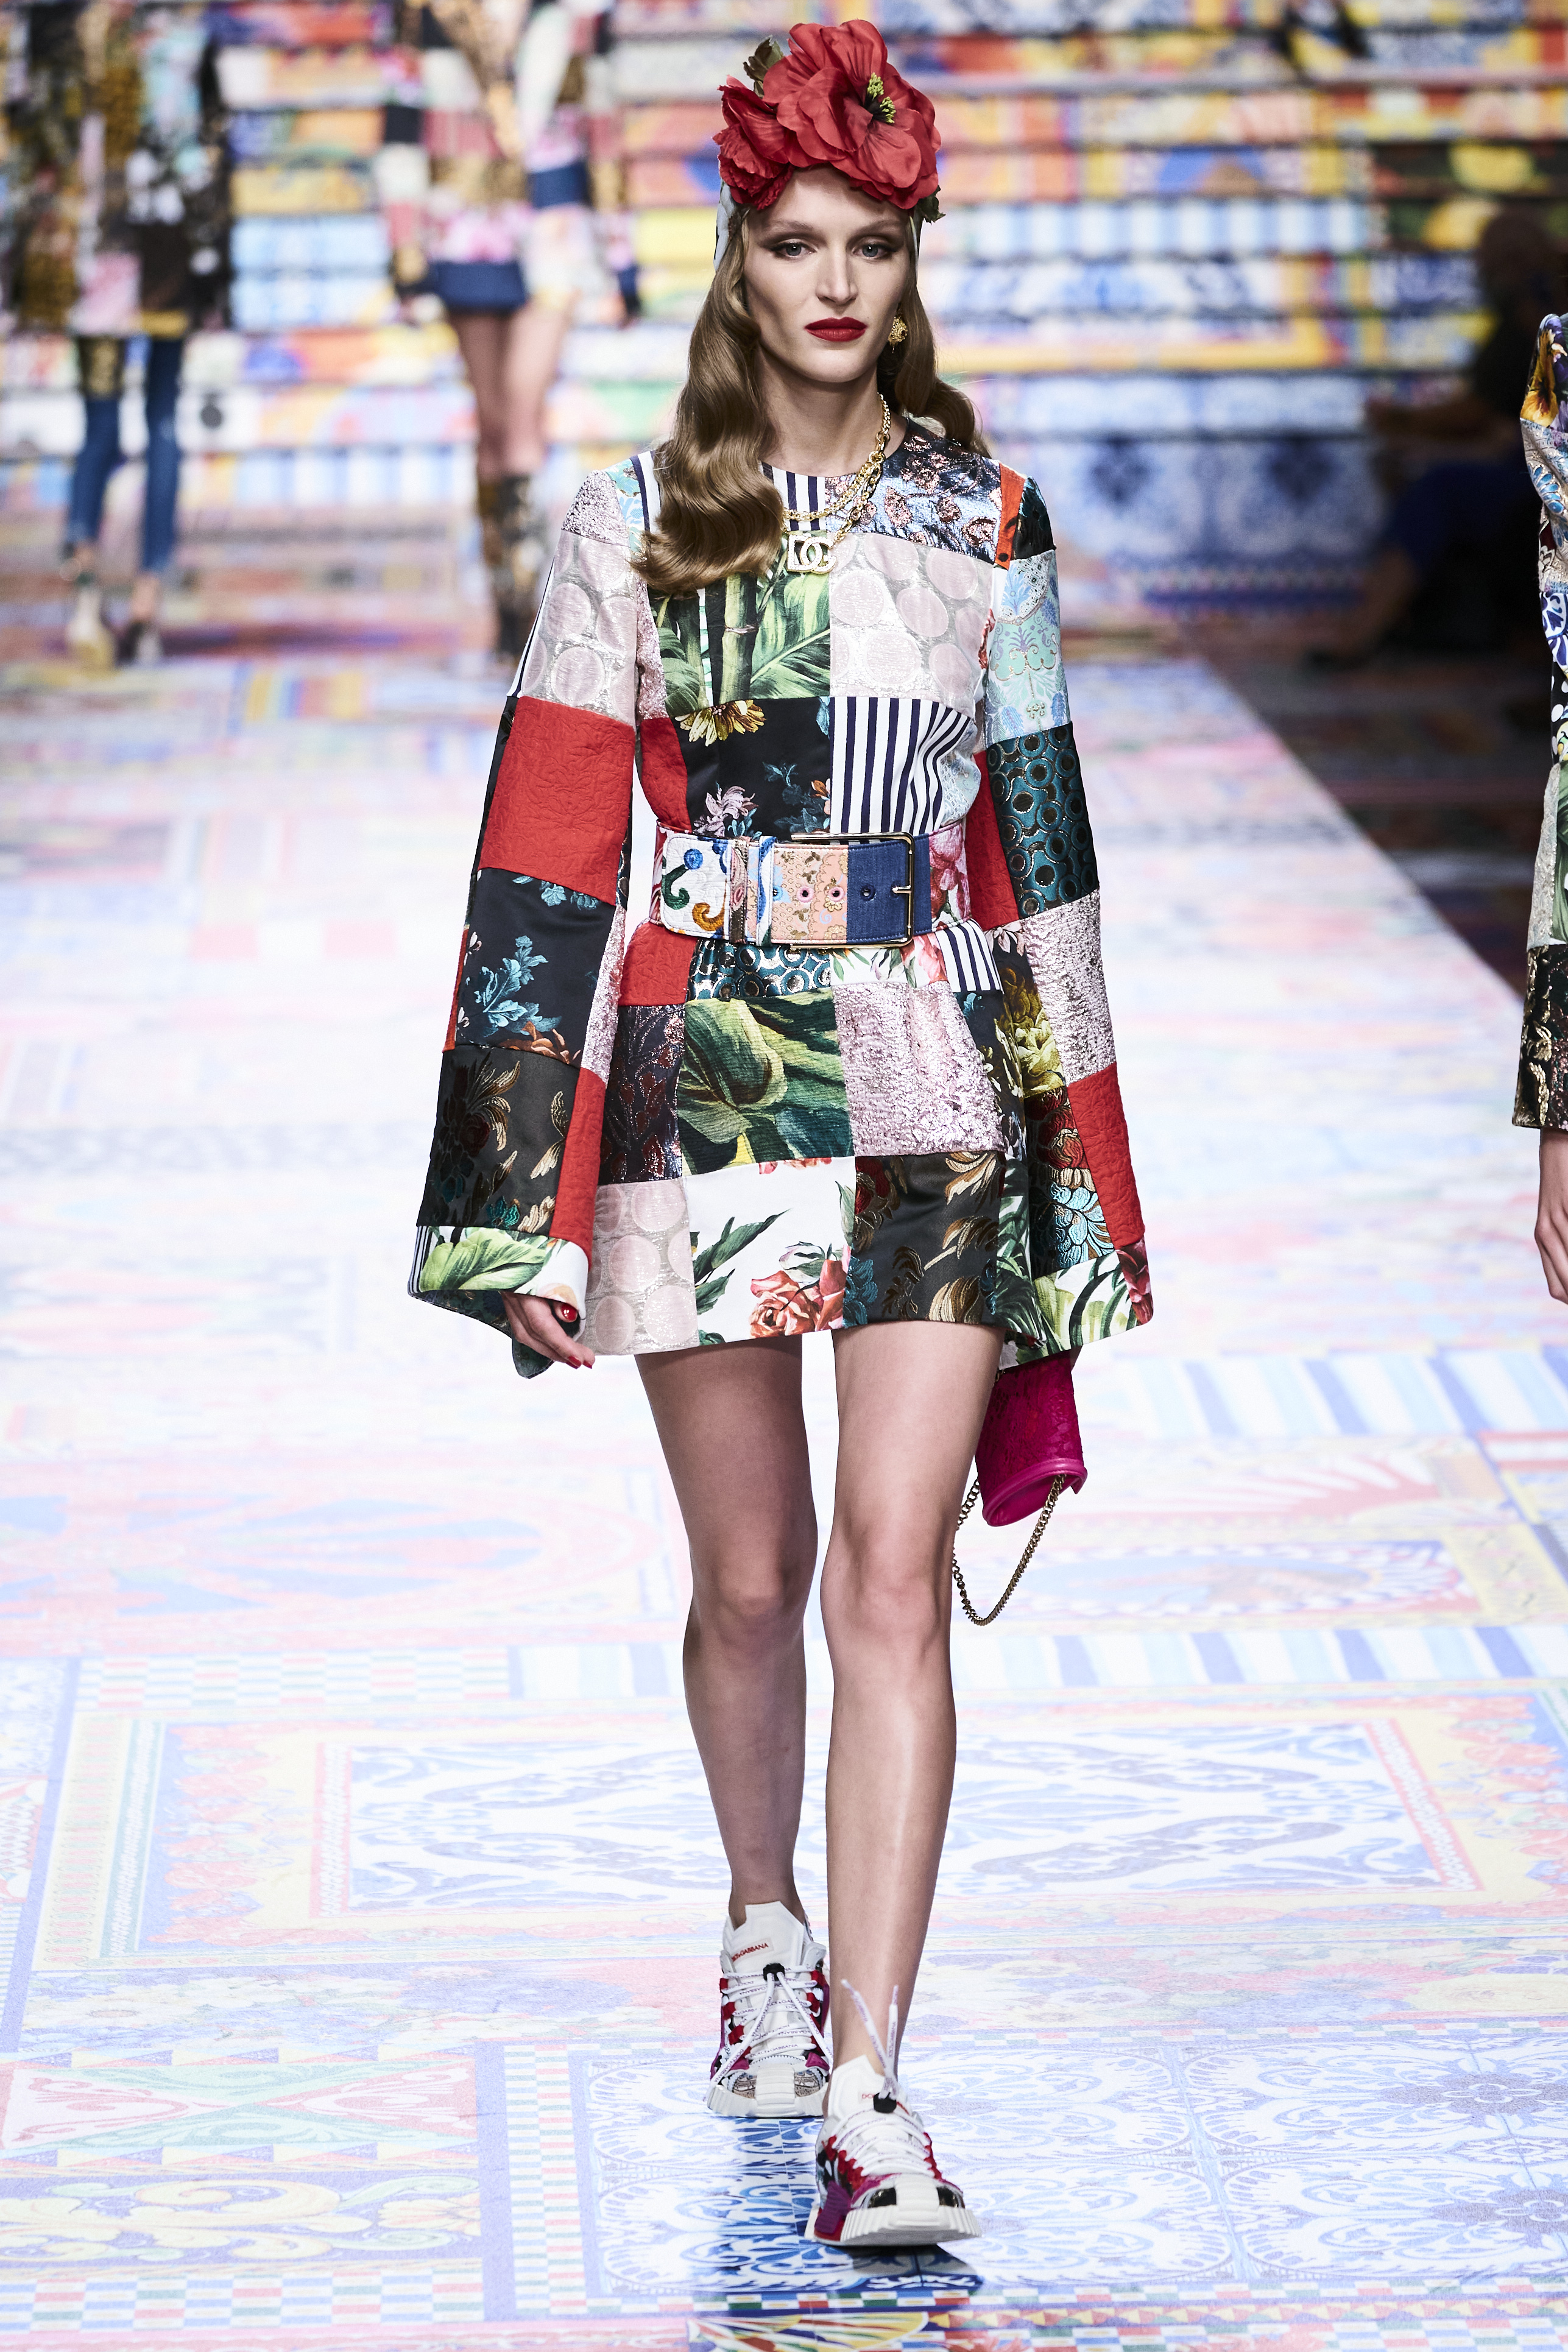 Prints galore: Dolce & Gabbana and Versace's Spring/Summer '21 collection (фото 12)